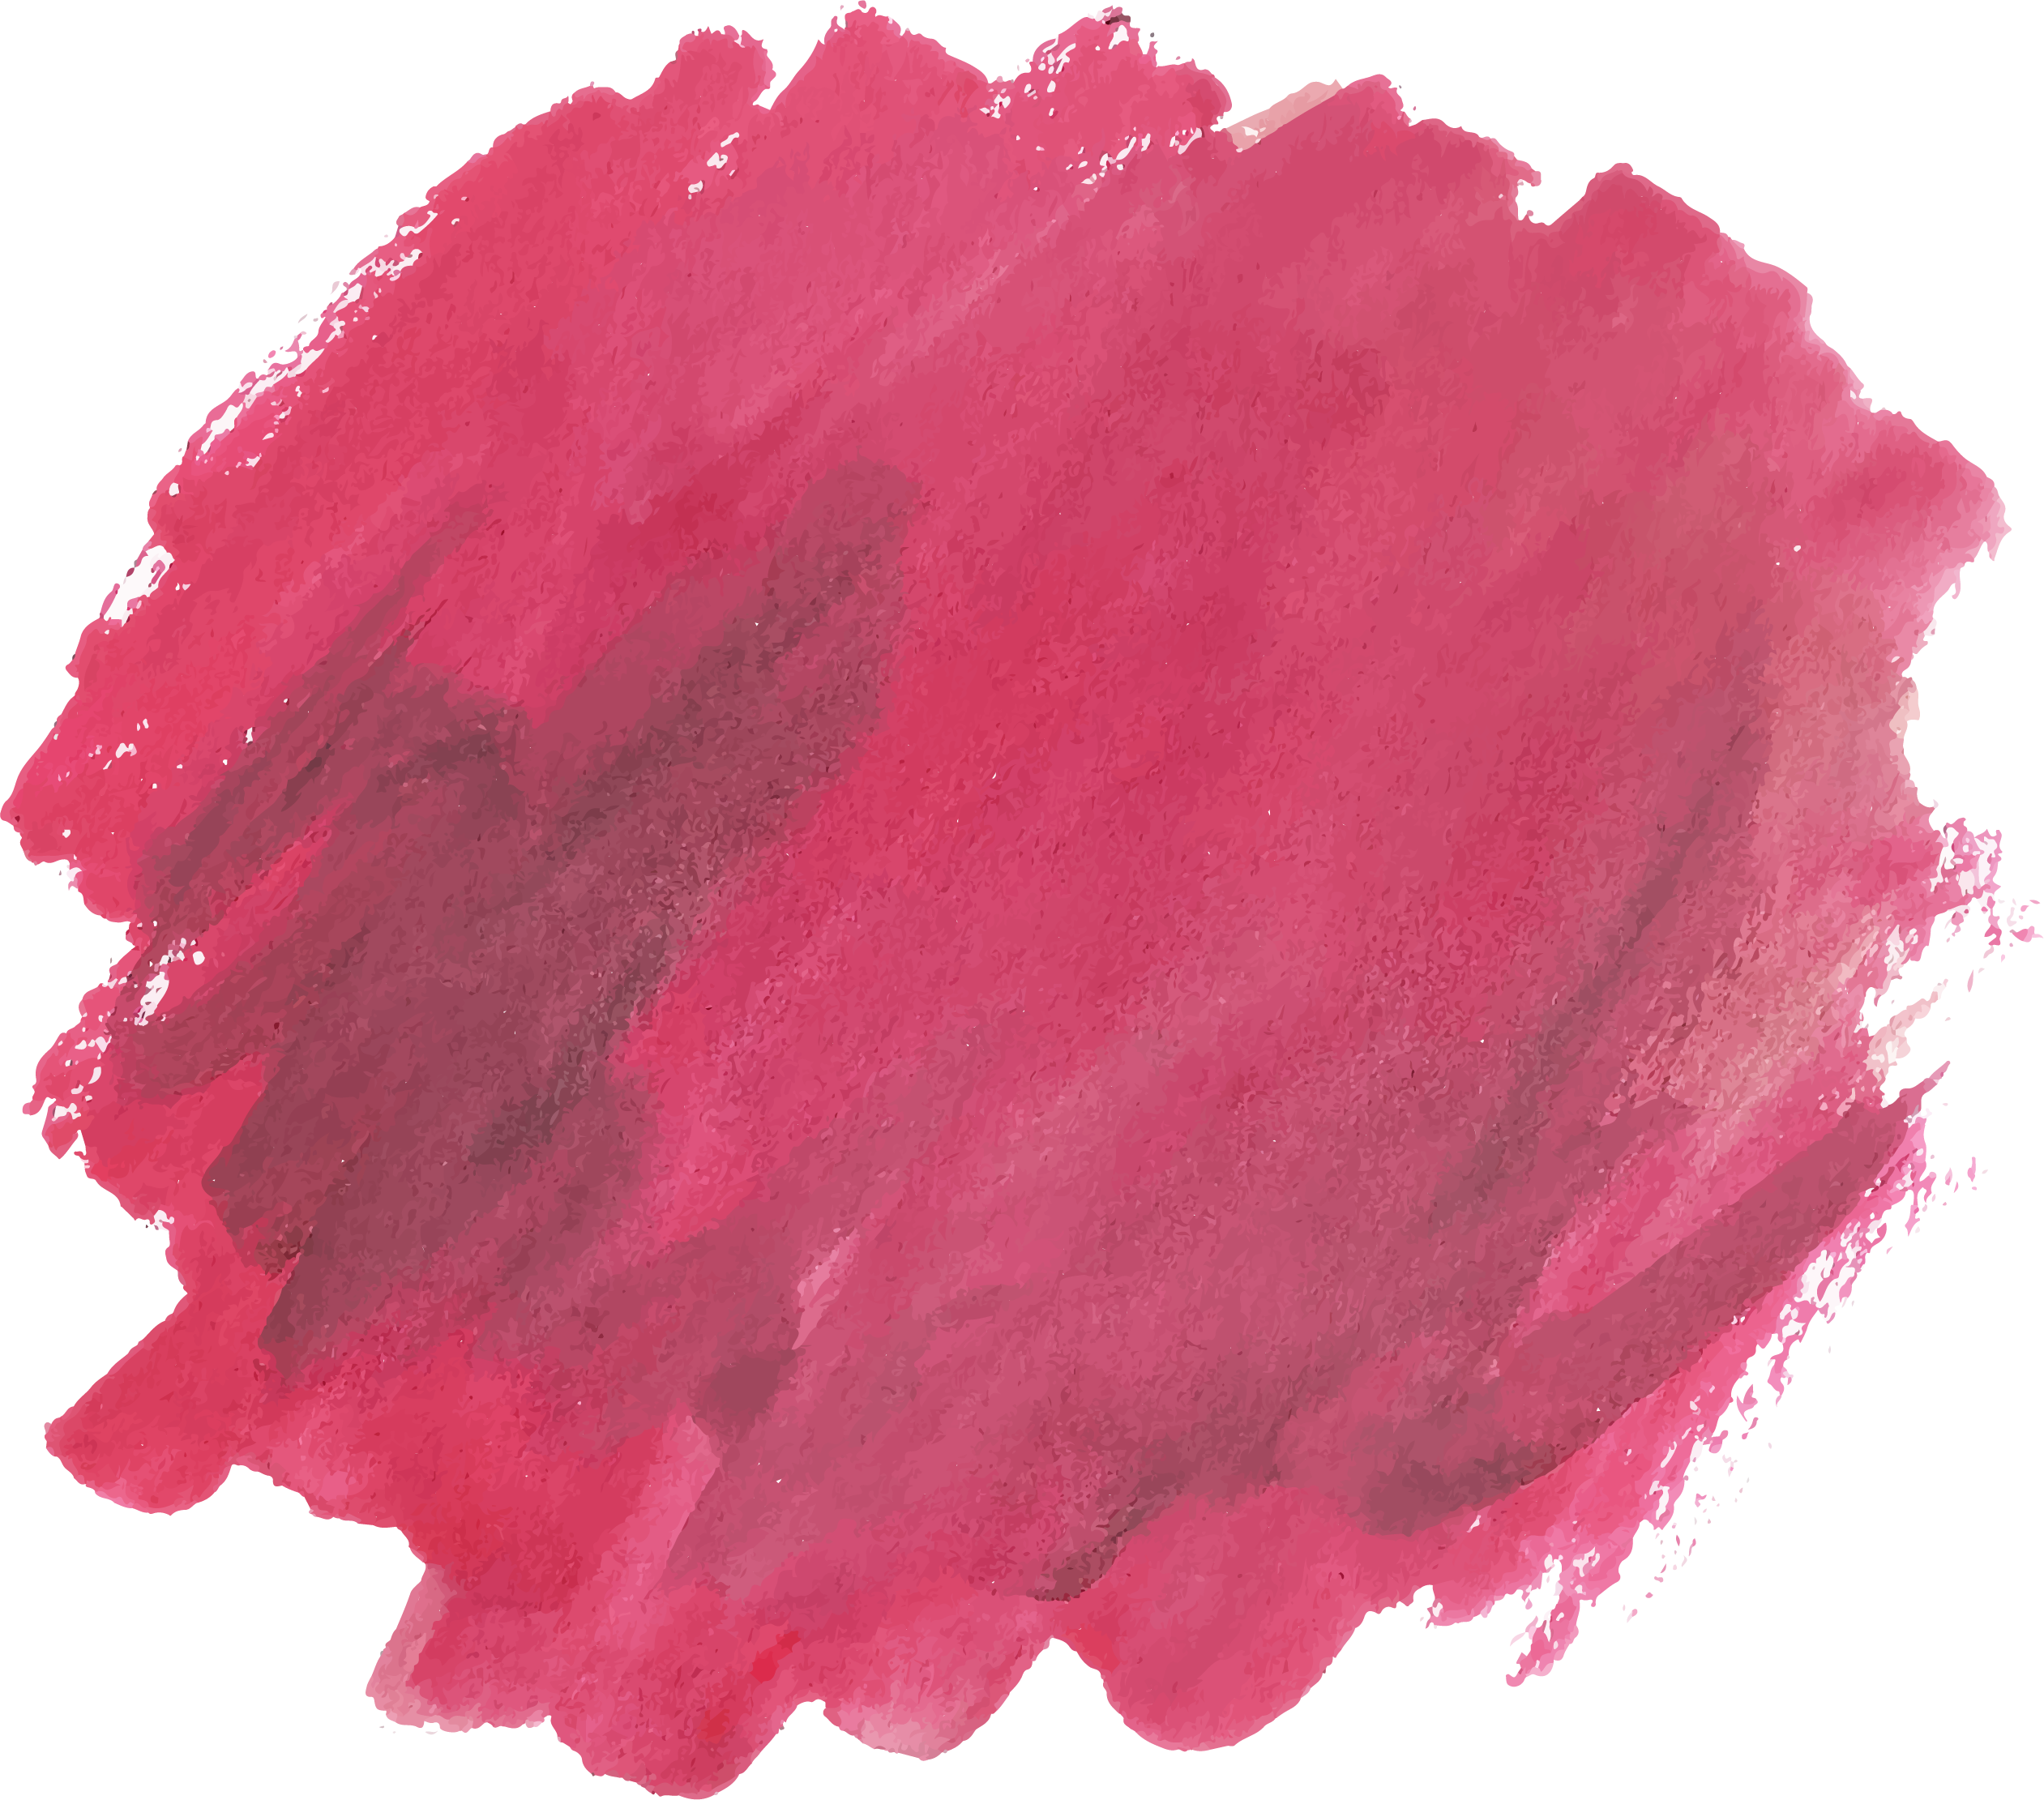 Red watercolor png. Brush painting euclidean vector